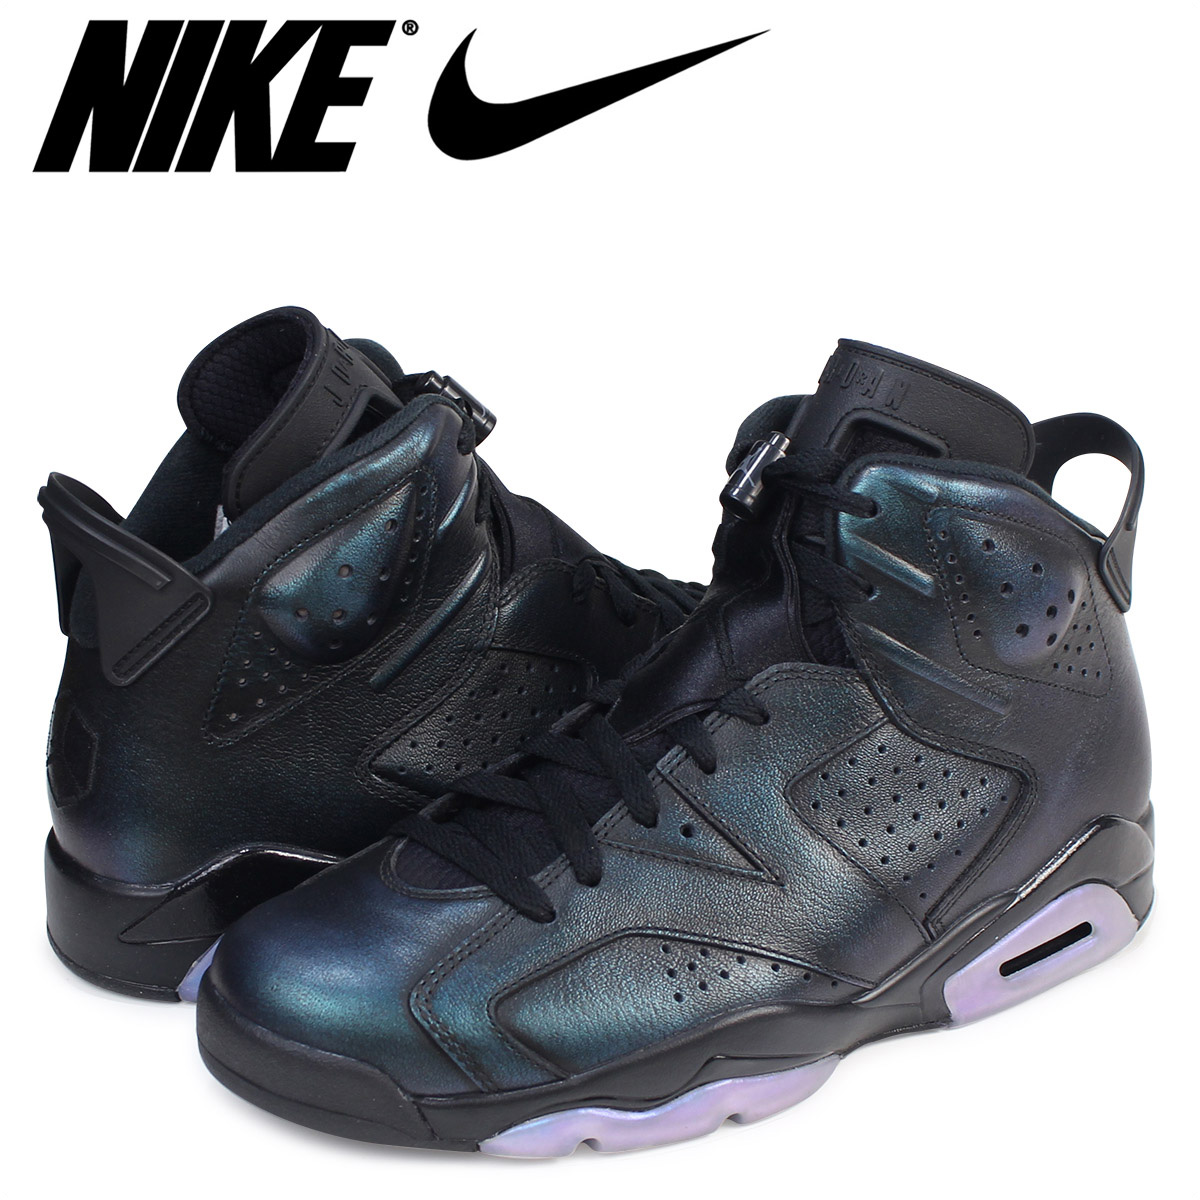 half off 6fdc2 995ad Nike NIKE Air Jordan 6 nostalgic sneakers AIR JORDAN 6 RETRO ALL STAR  907,961-015 men's shoes black [load planned Shinnyu load in reservation  product ...